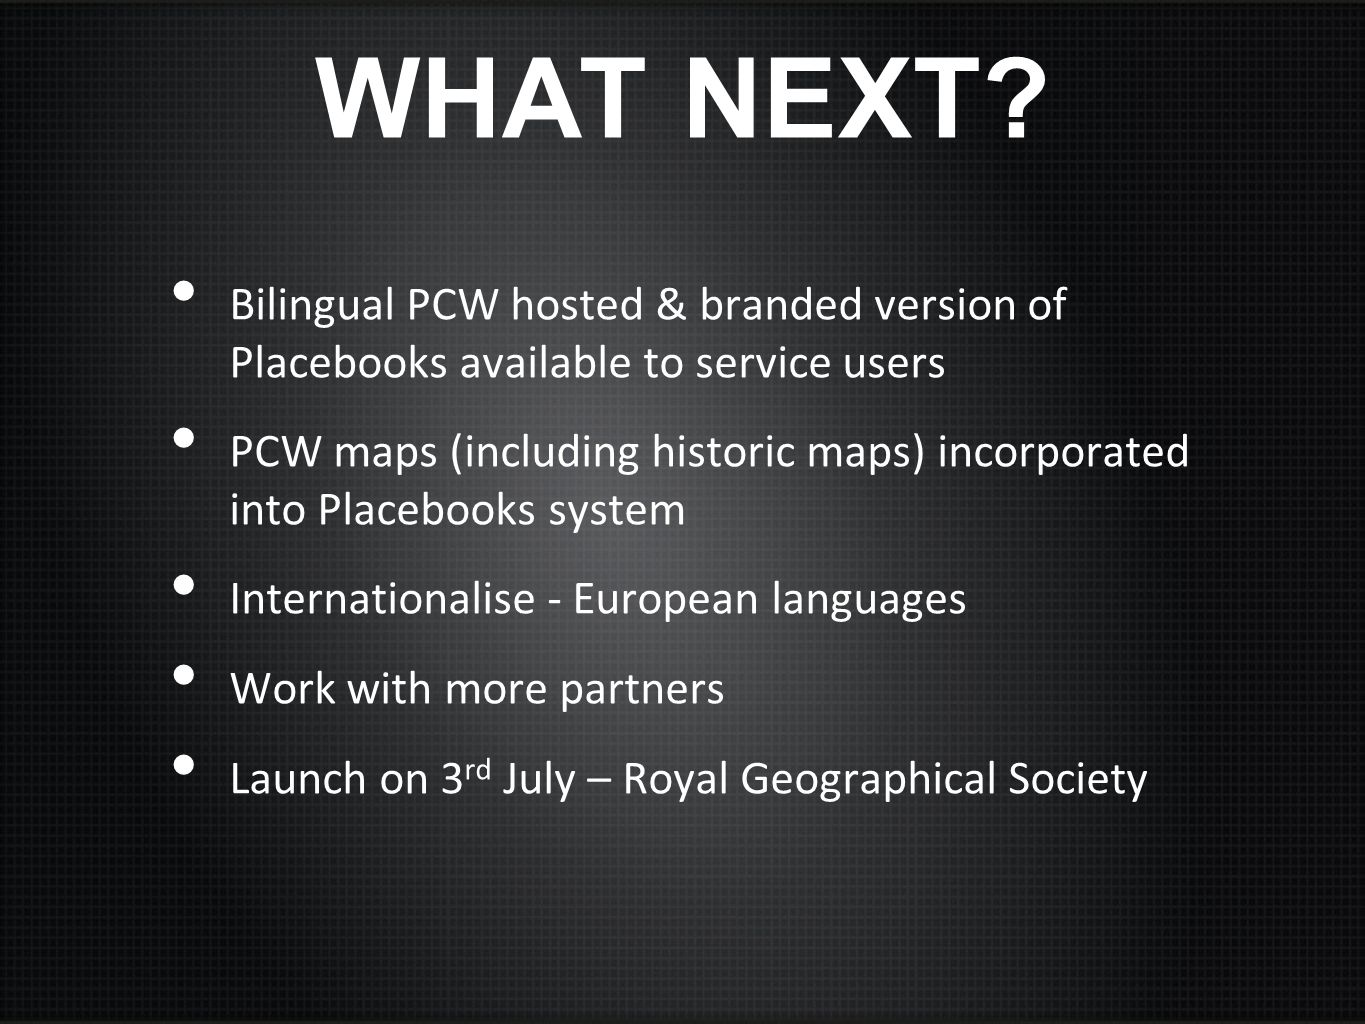 WHAT NEXT Bilingual PCW hosted & branded version of Placebooks available to service users.